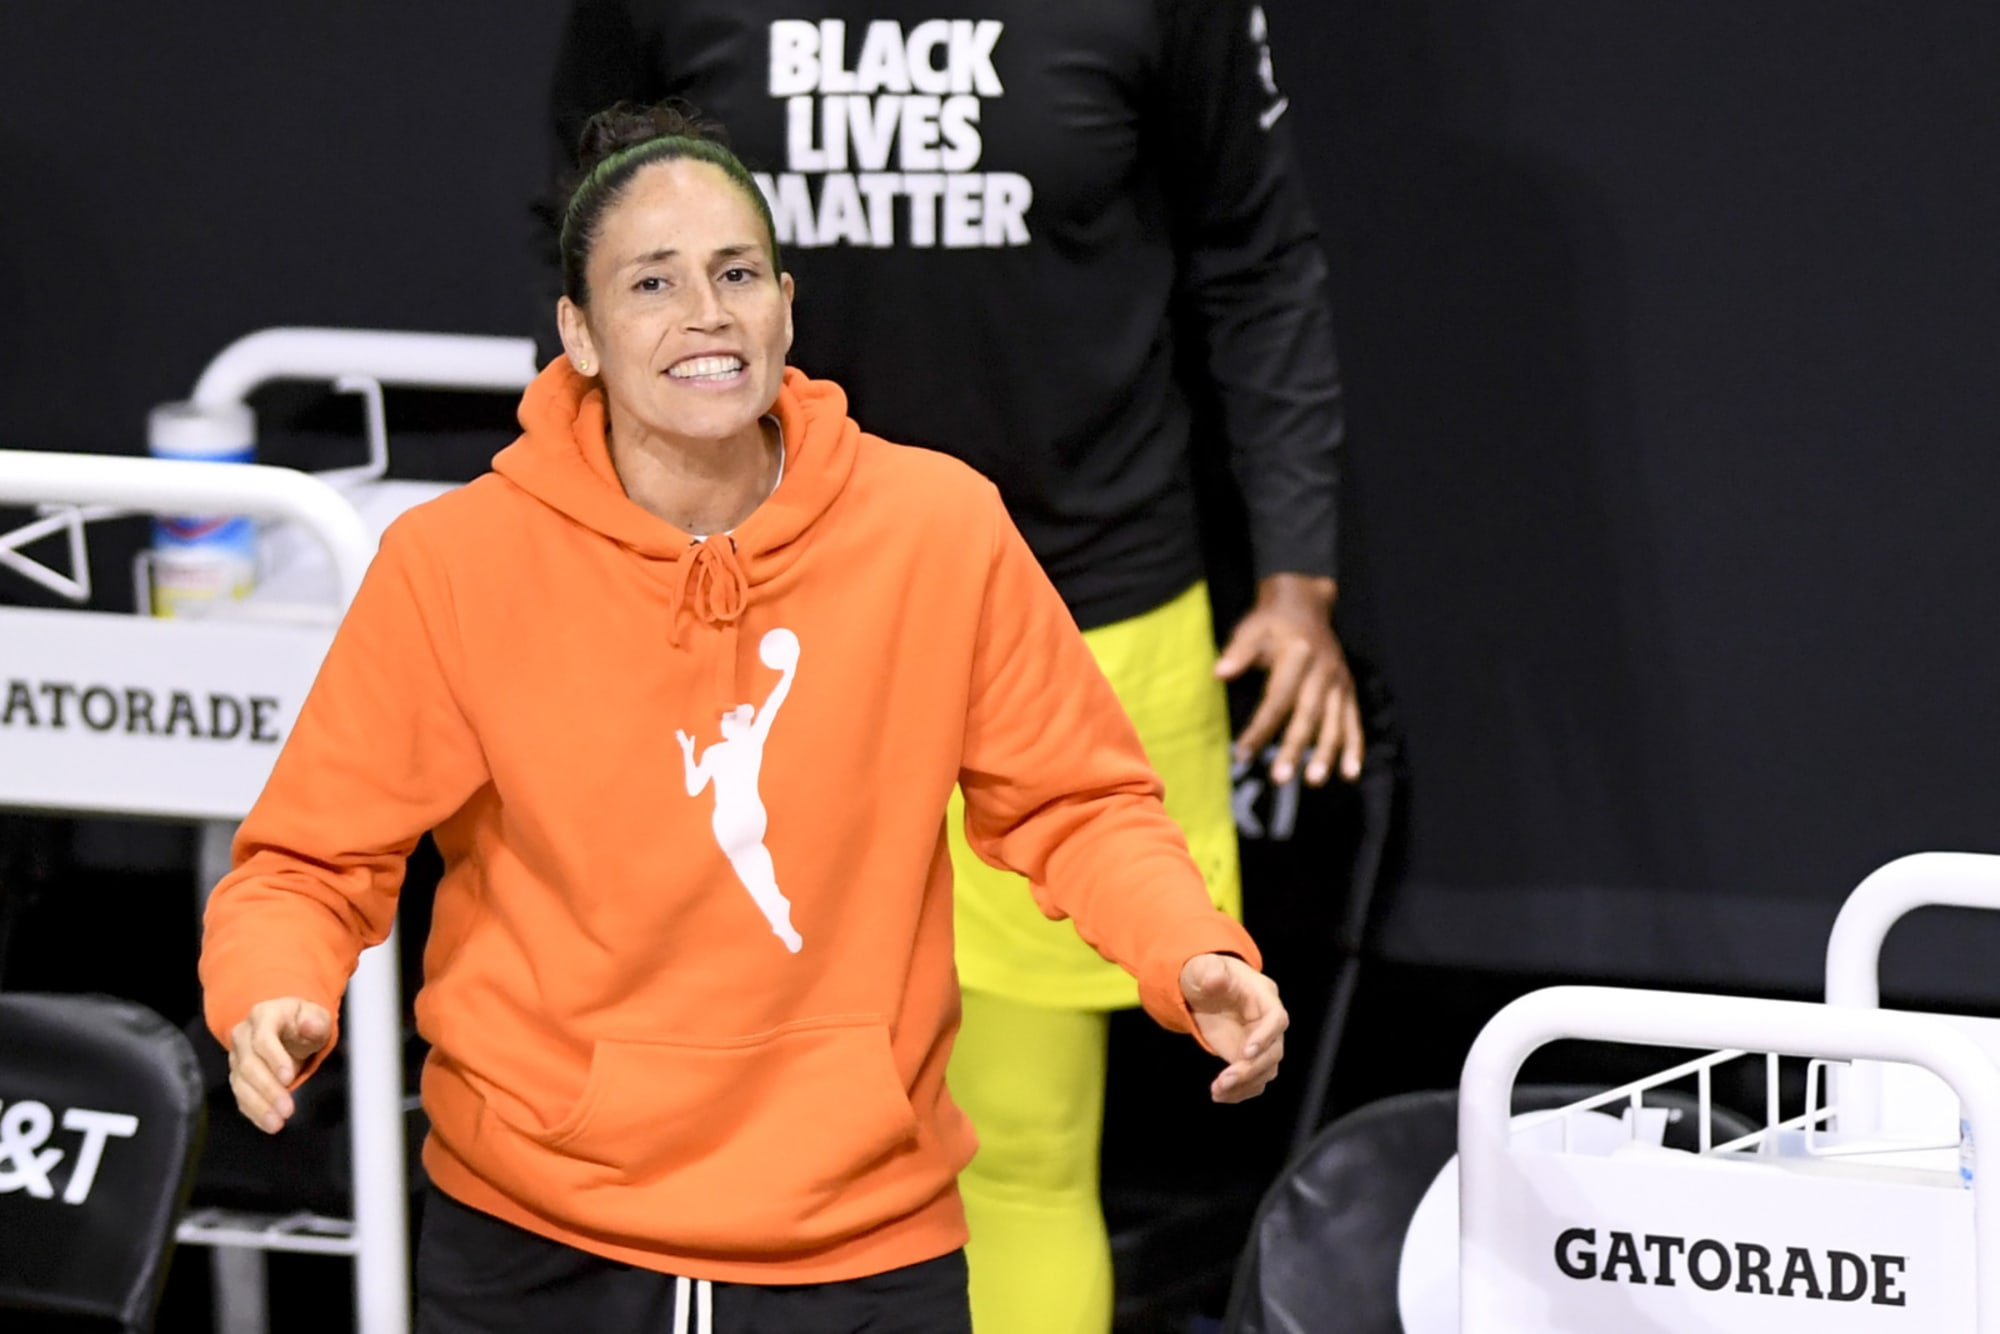 Your Day in Women's Basketball, August 14: Odyssey Sims and Sue Bird return